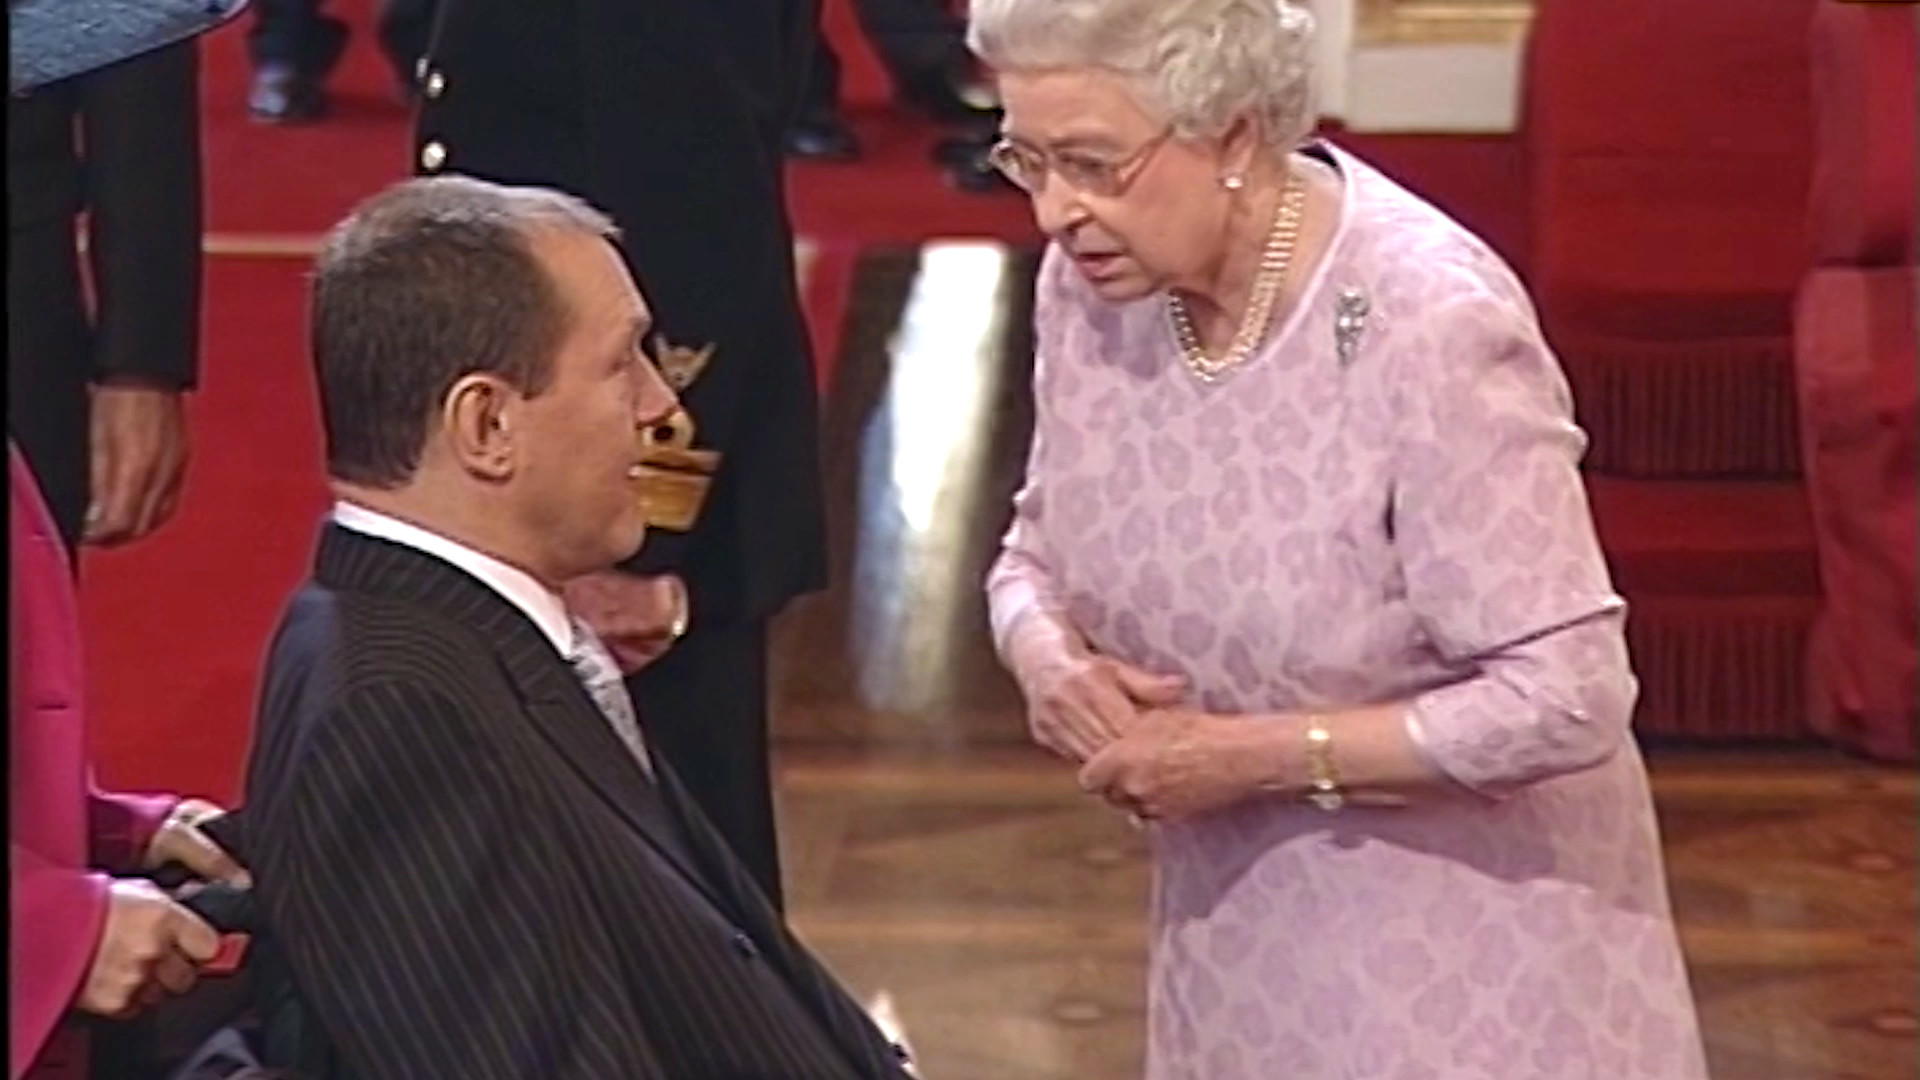 Phil Downs receives MBE from the Queen in 2004